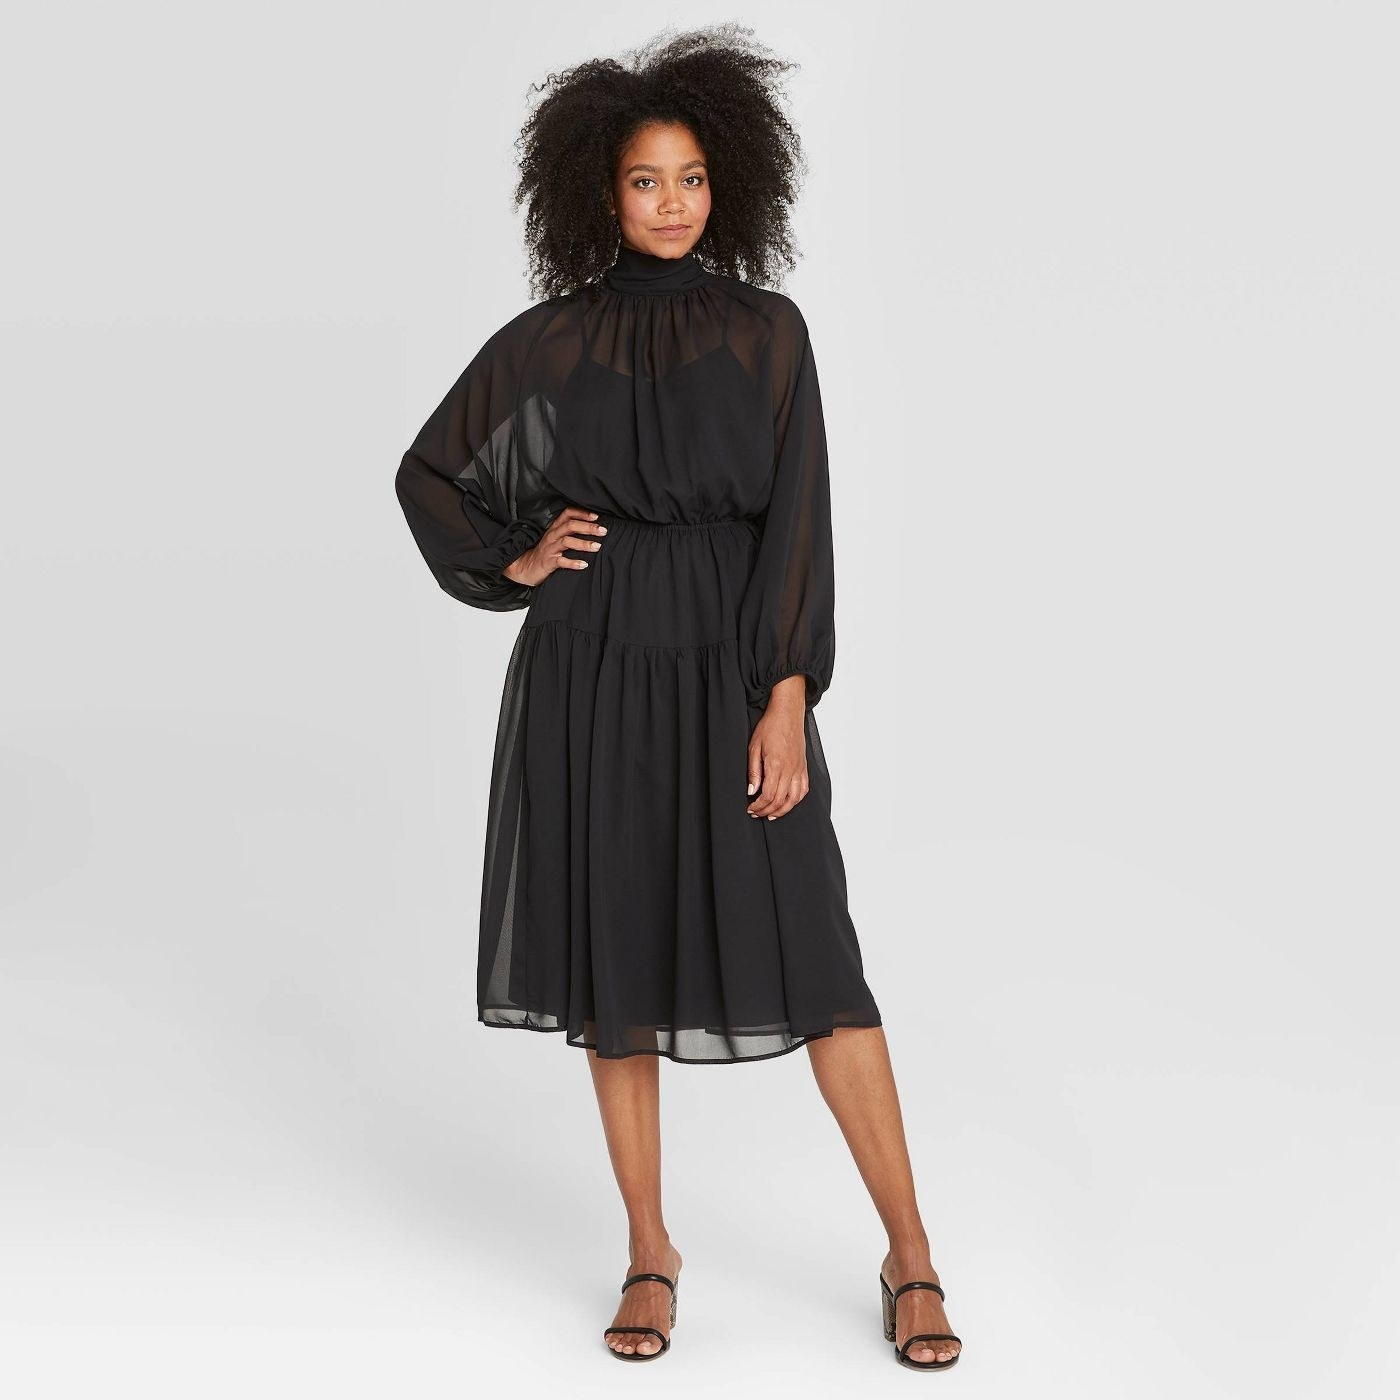 Model in black long sleeve midi dress